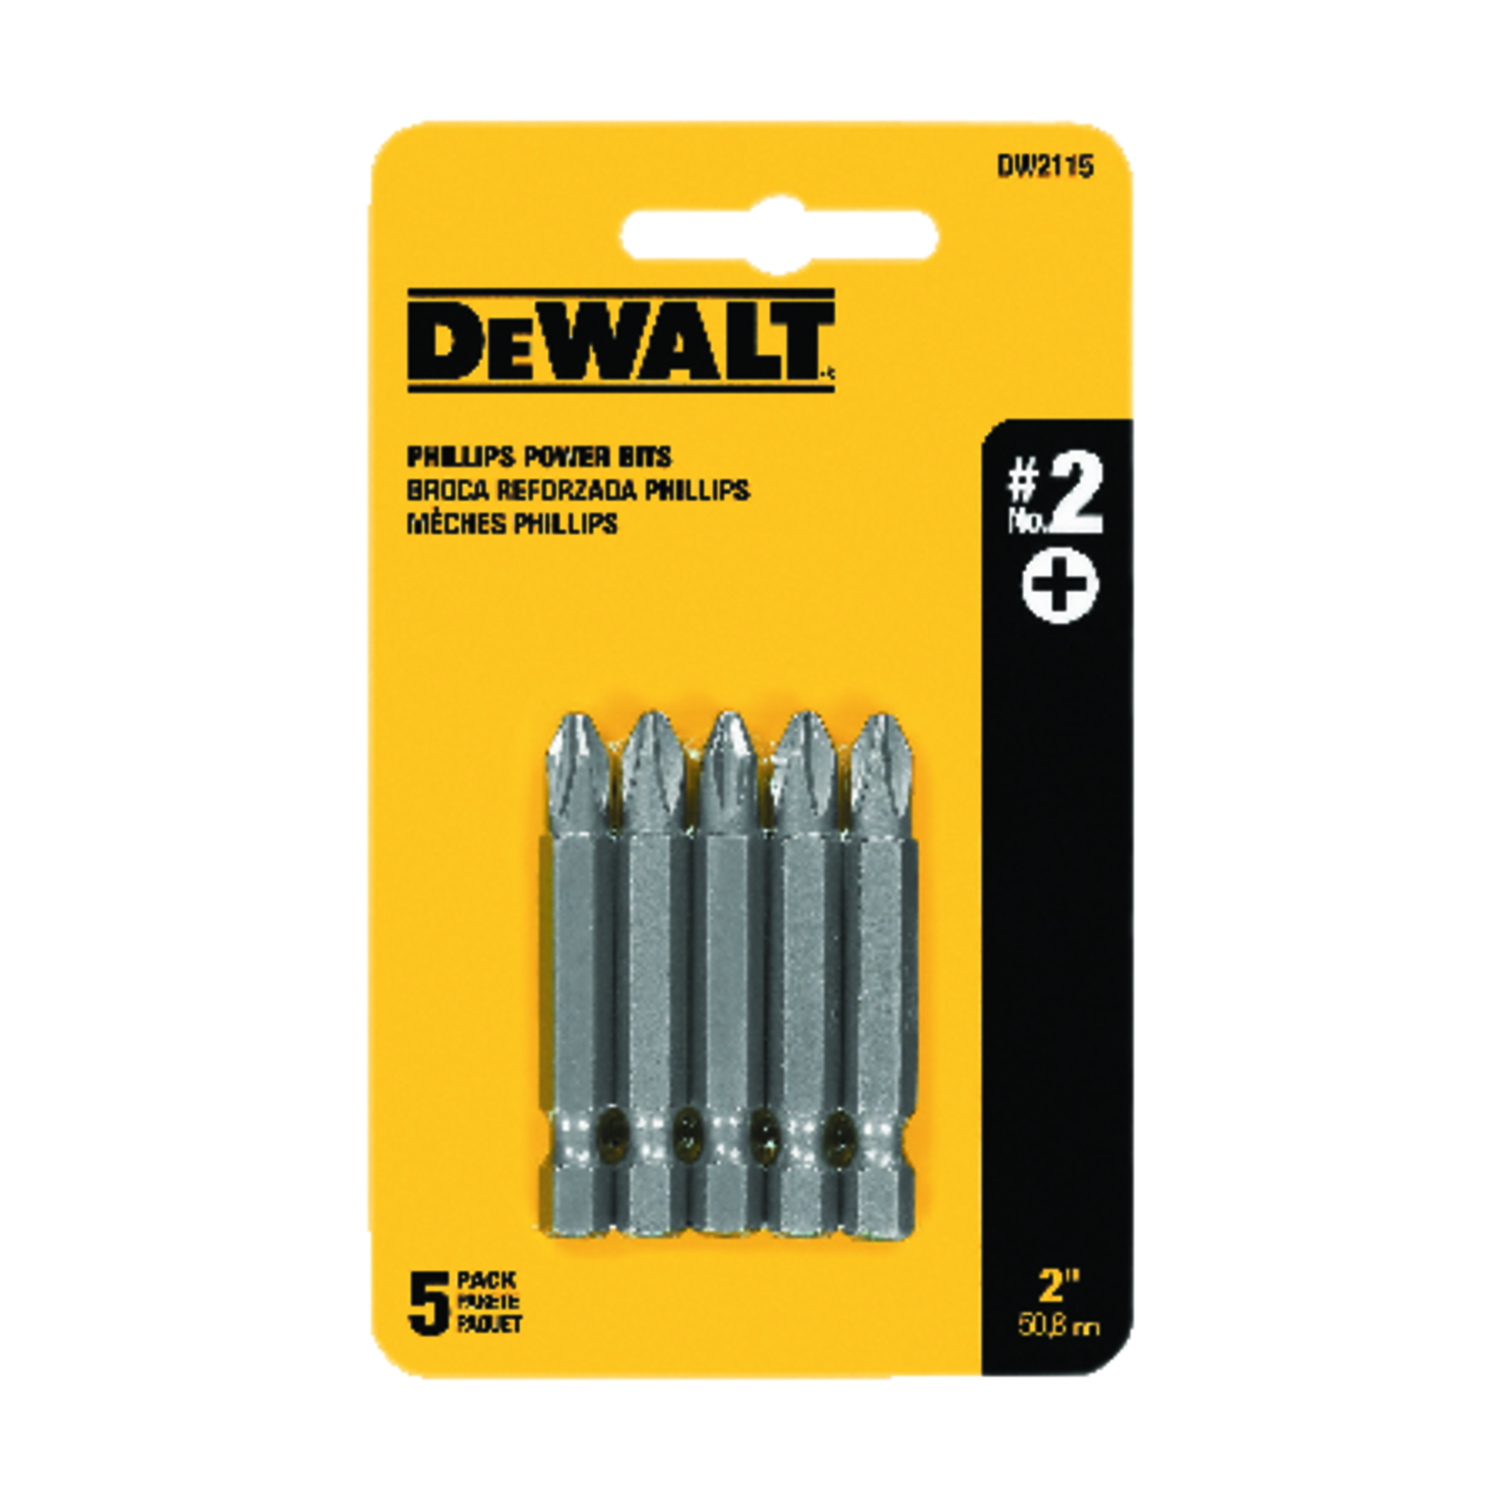 DeWalt  2 in. L 1/4 in. 5 pc. Power Screwdriver Bit  Heat-Treated Steel